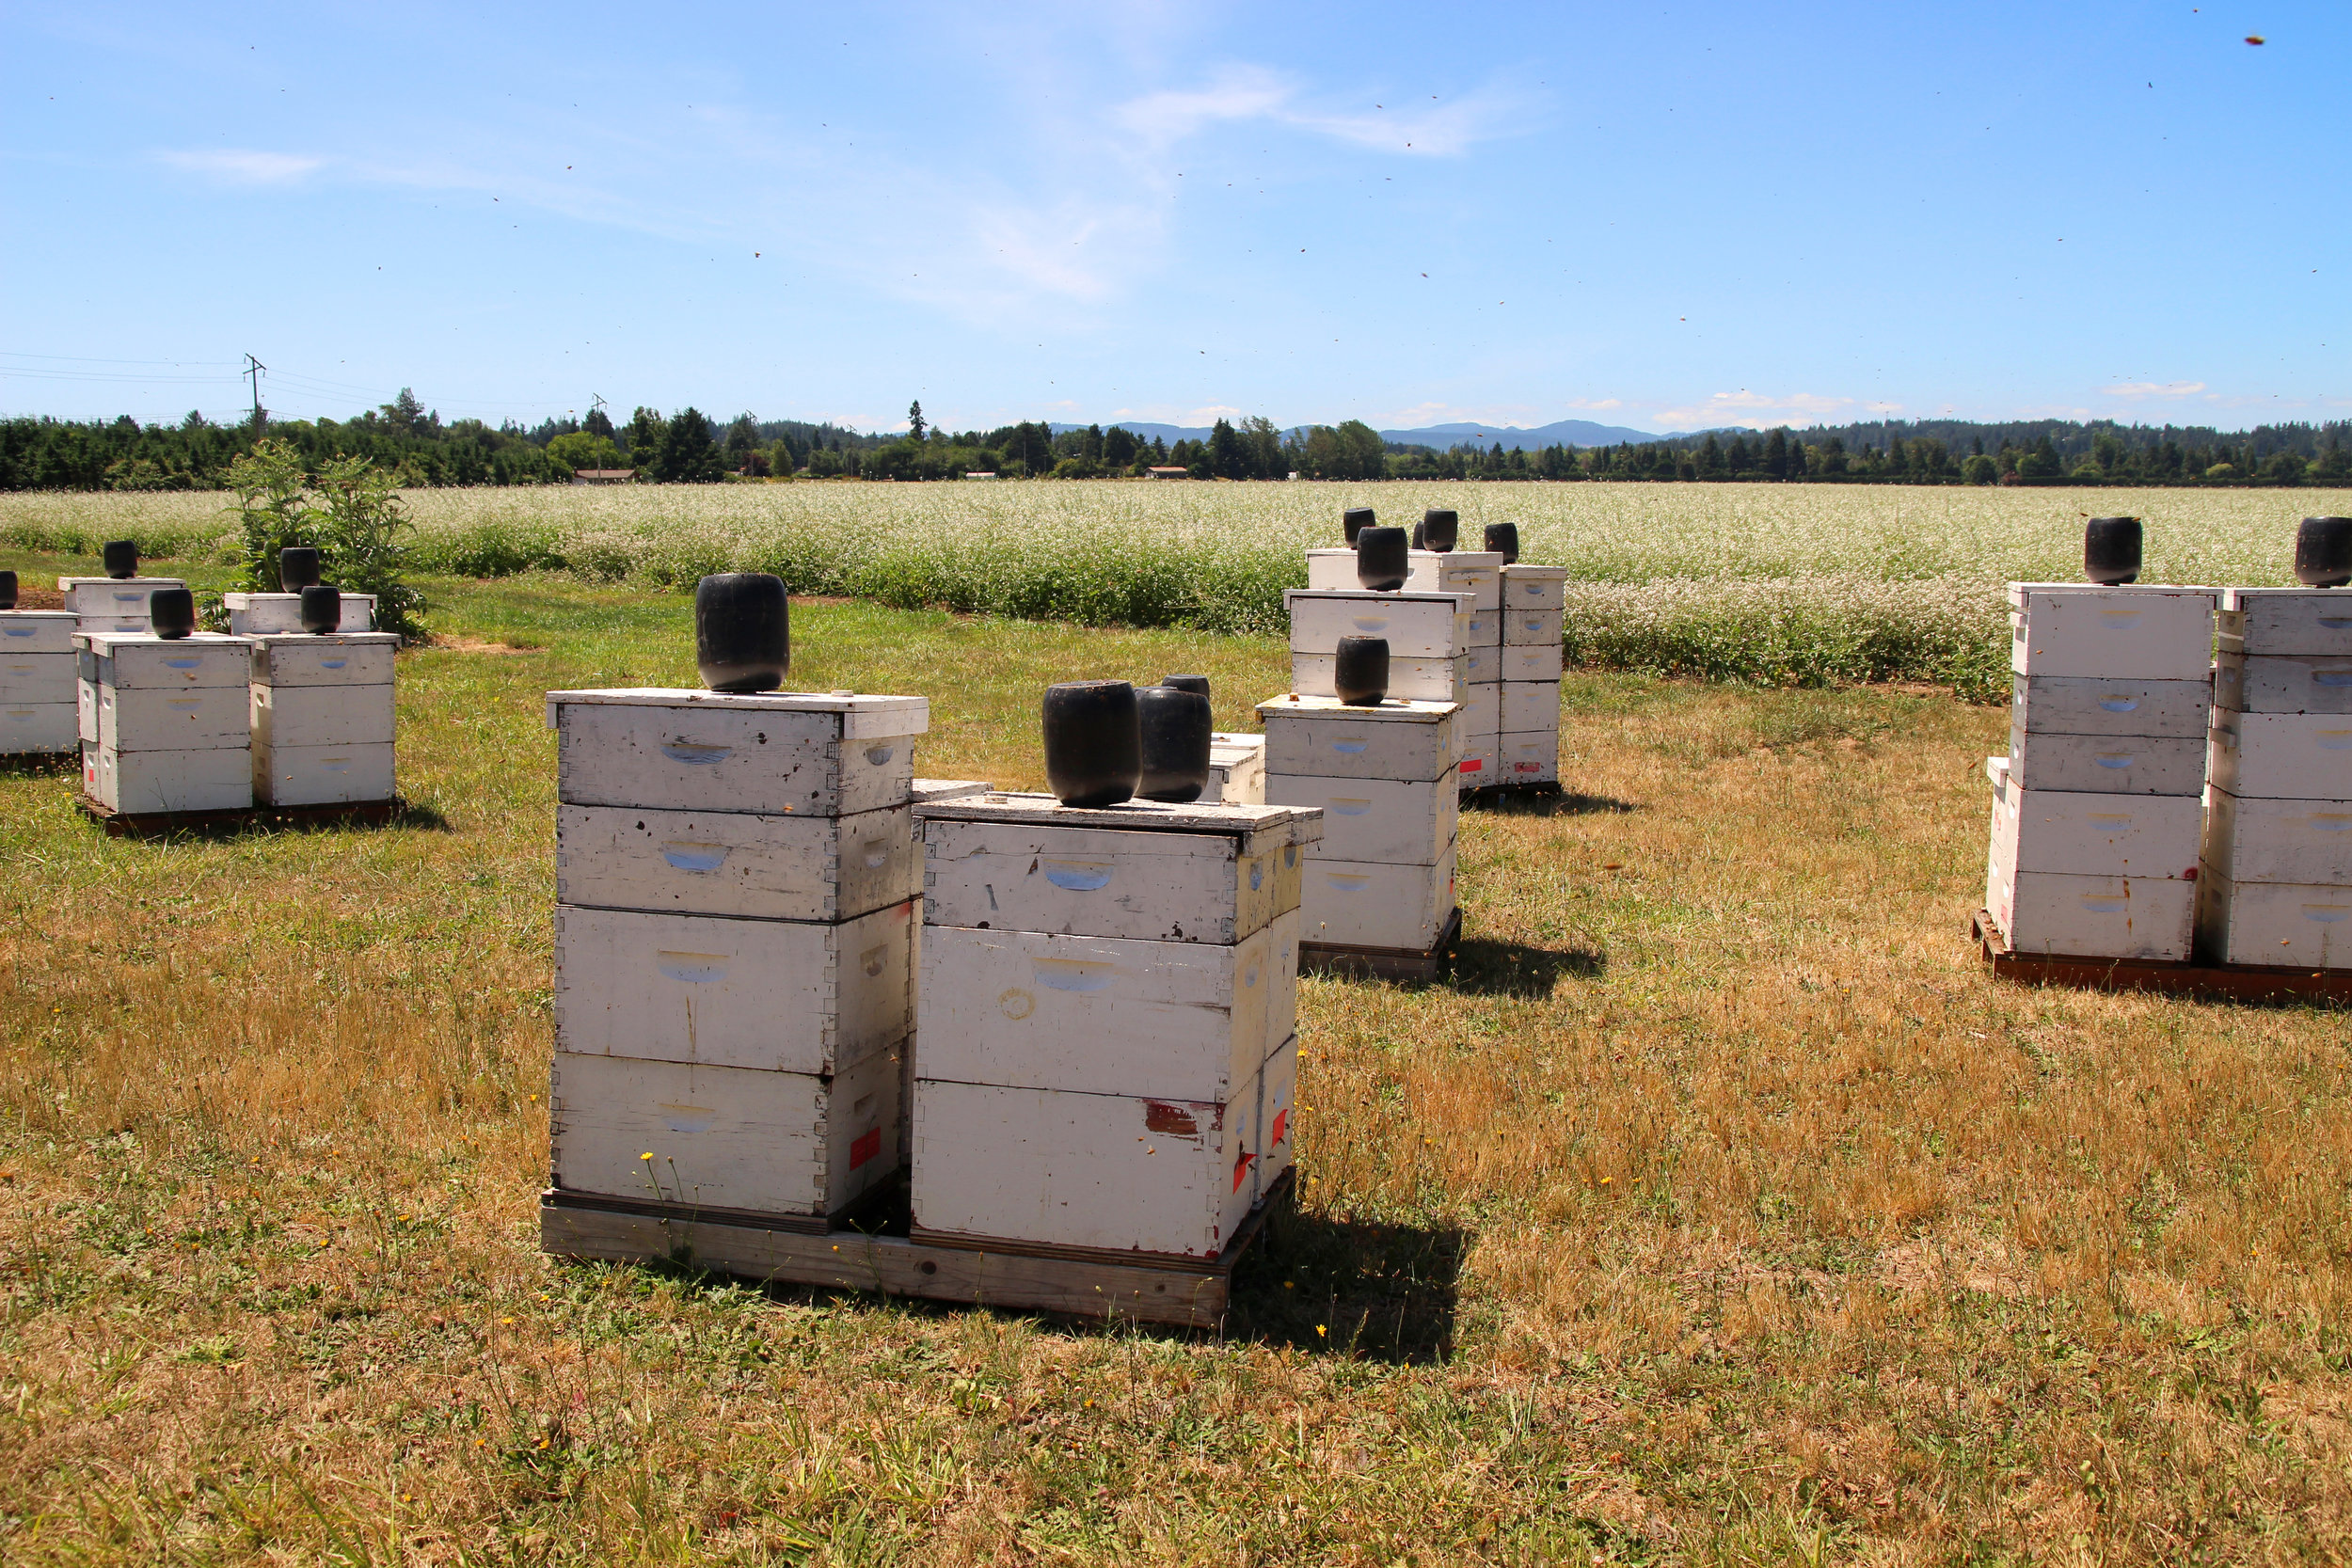 Honey bee colonies are used for pollinating radishes on the farm.